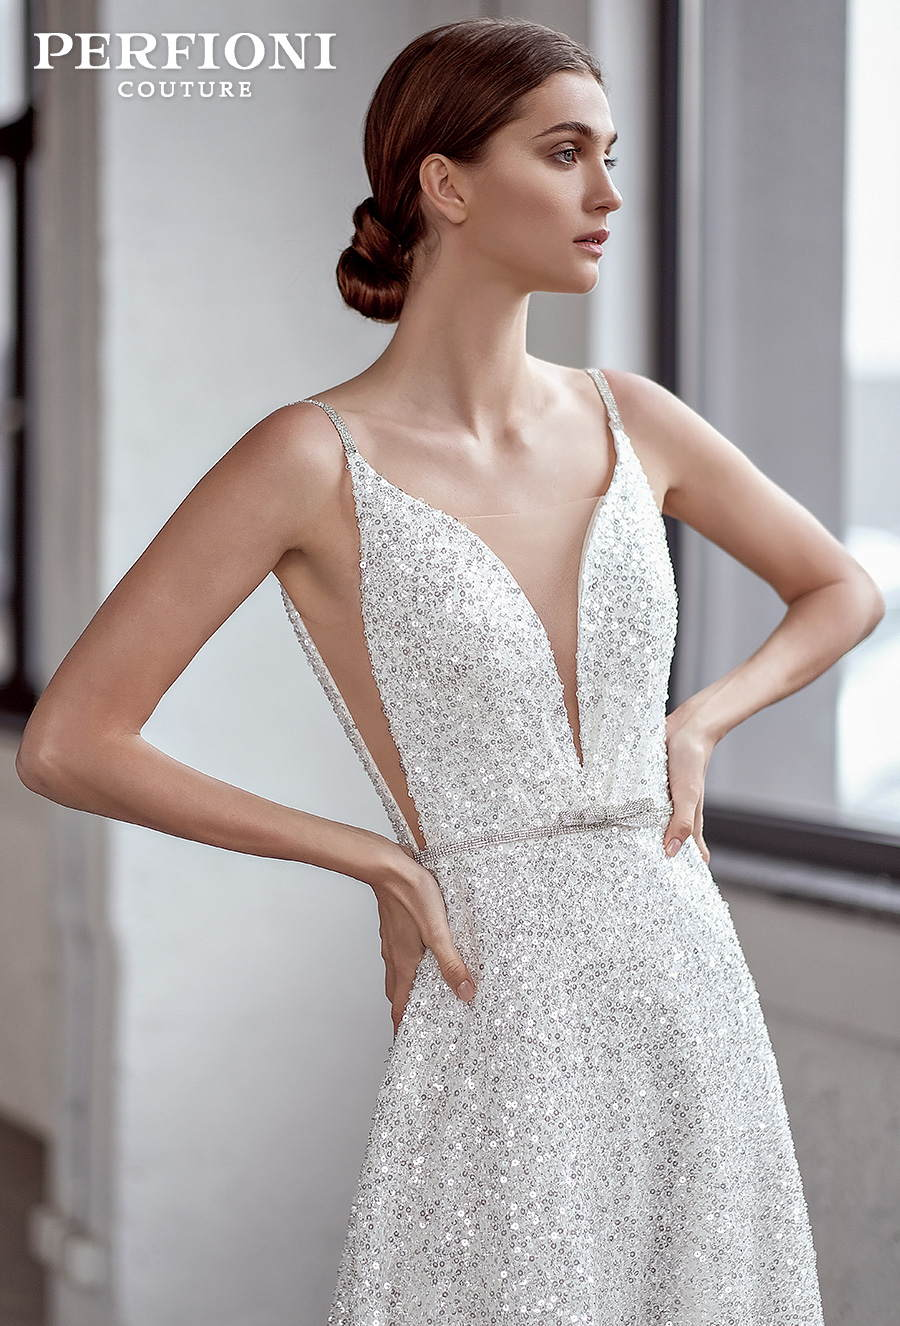 perfioni 2020 love season bridal sleeveless thin strap deep sweetheart neckline sexy glamorous a line wedding dress (stella) zv mv